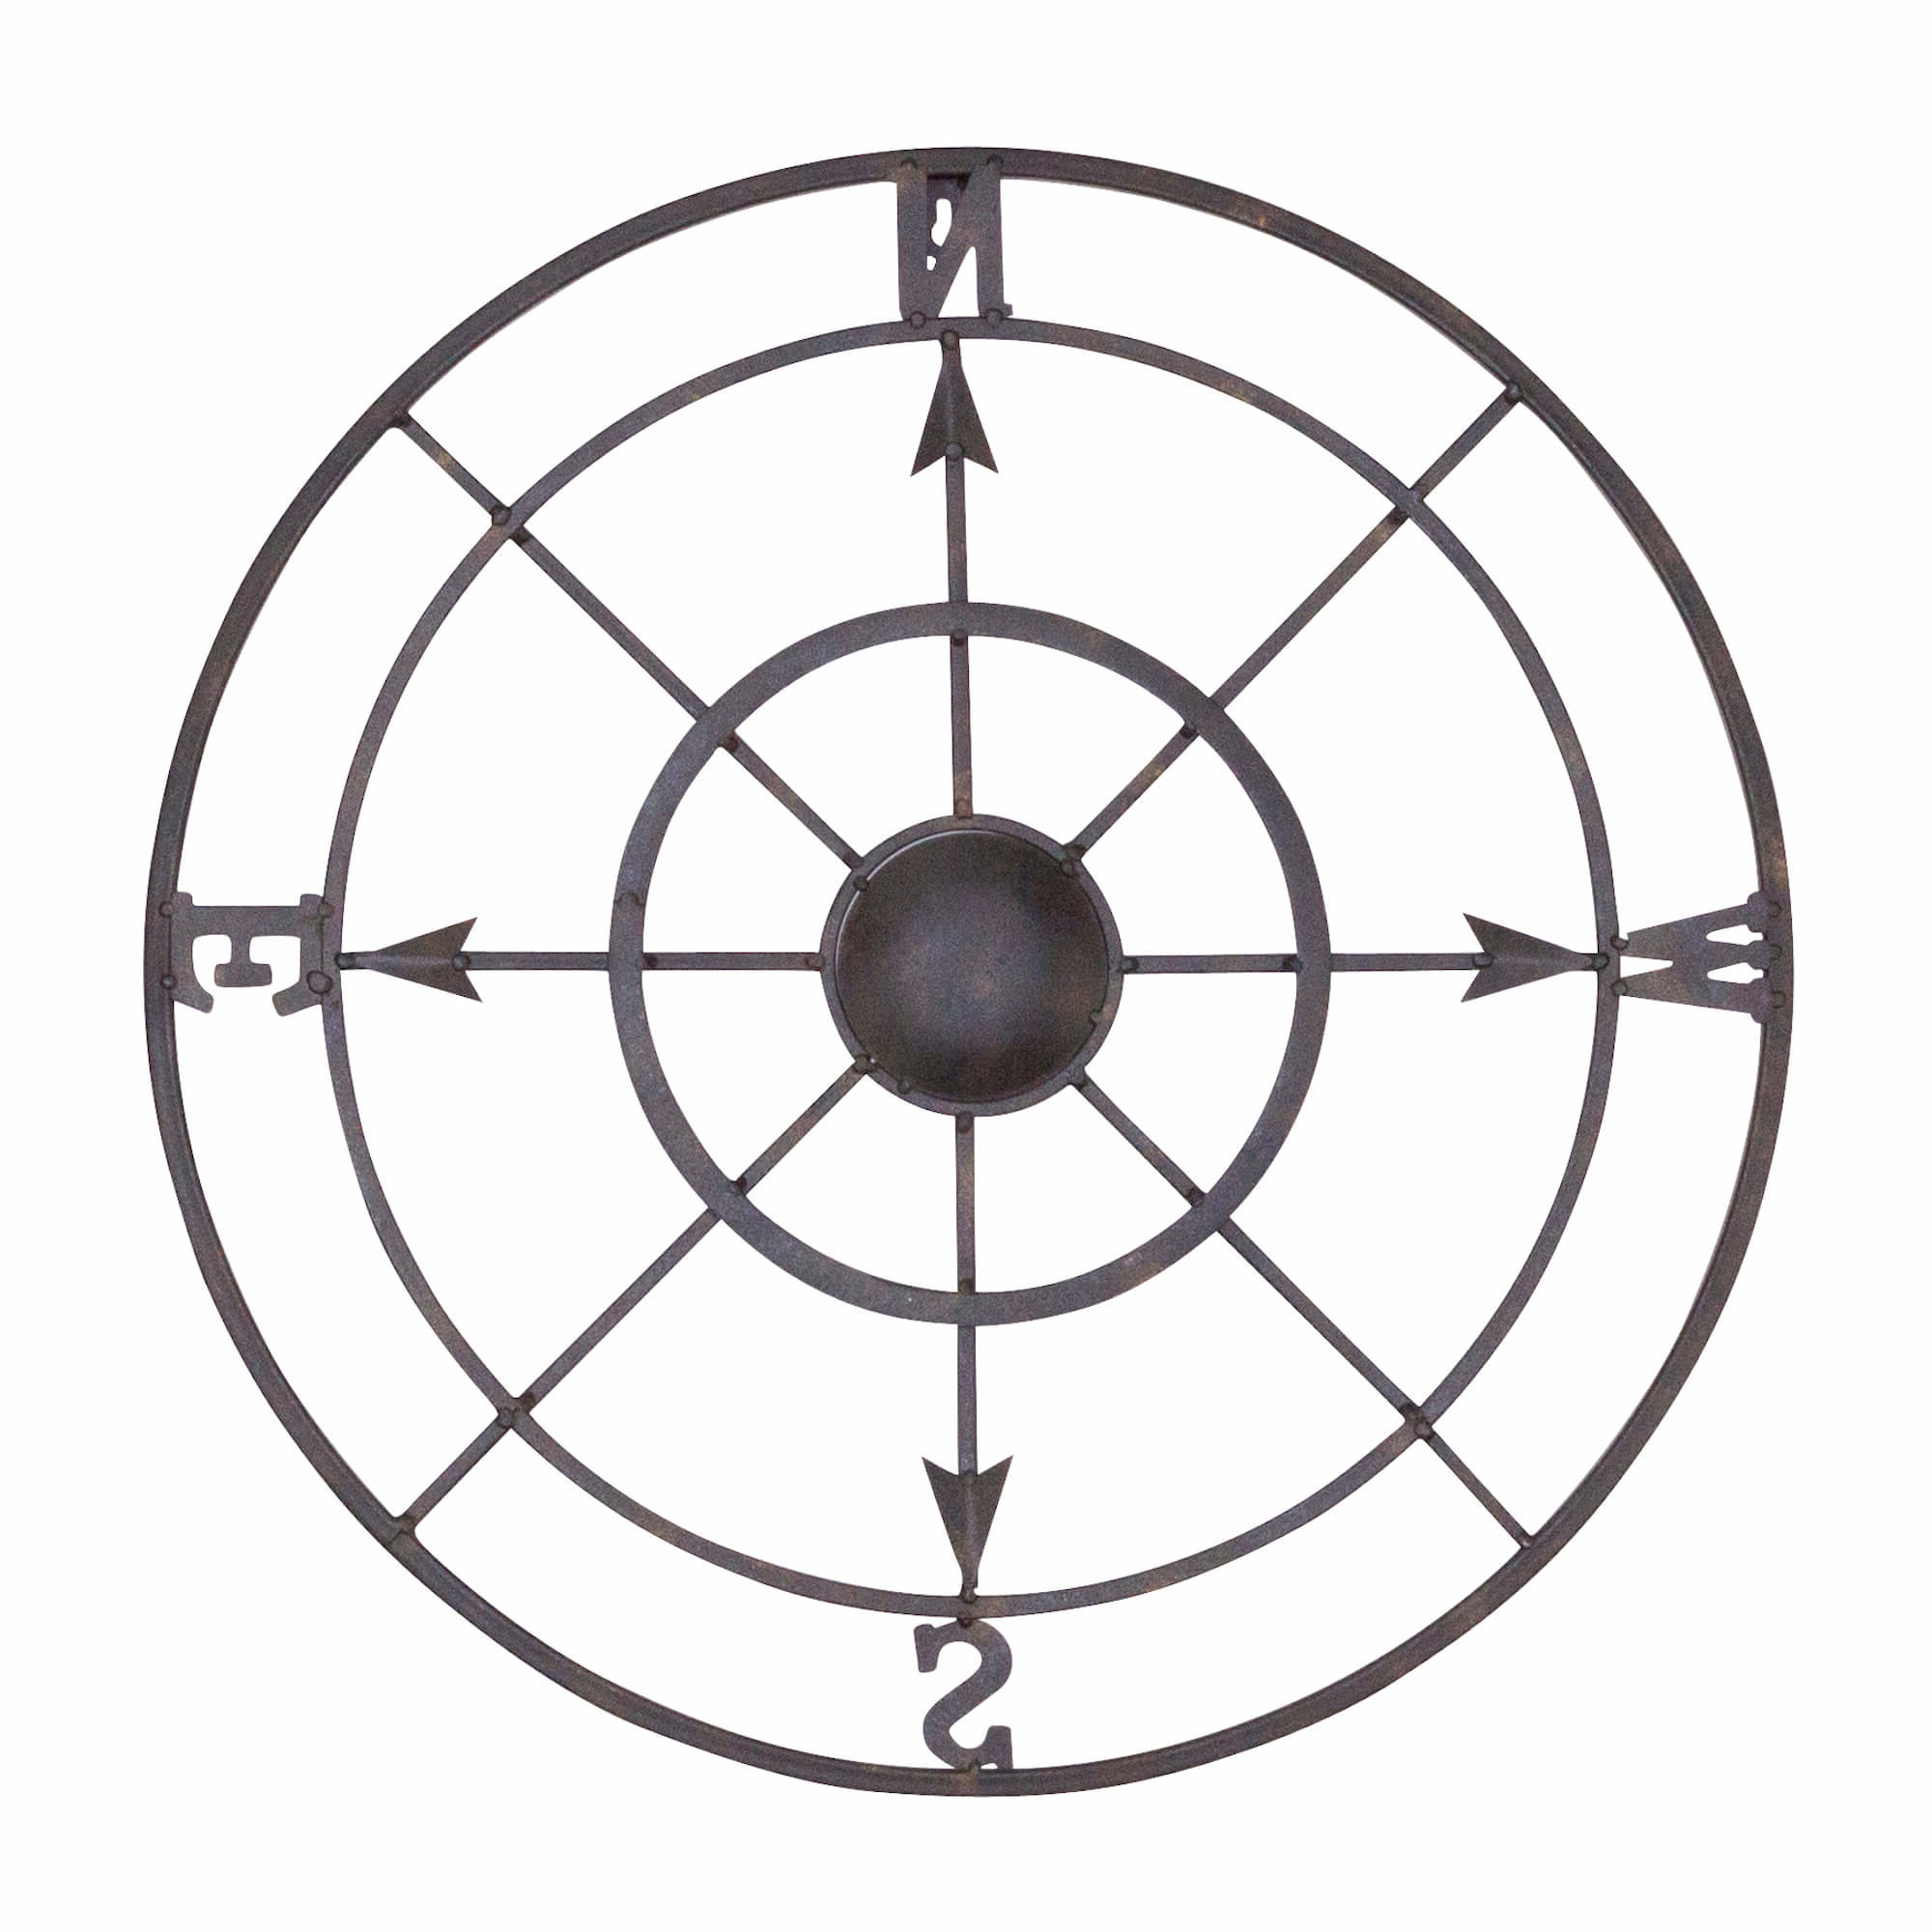 2019 Round Compass Wall Decor Intended For Bayaccents Nautical Metal Compass Rose Wall Décor & Reviews (View 1 of 20)